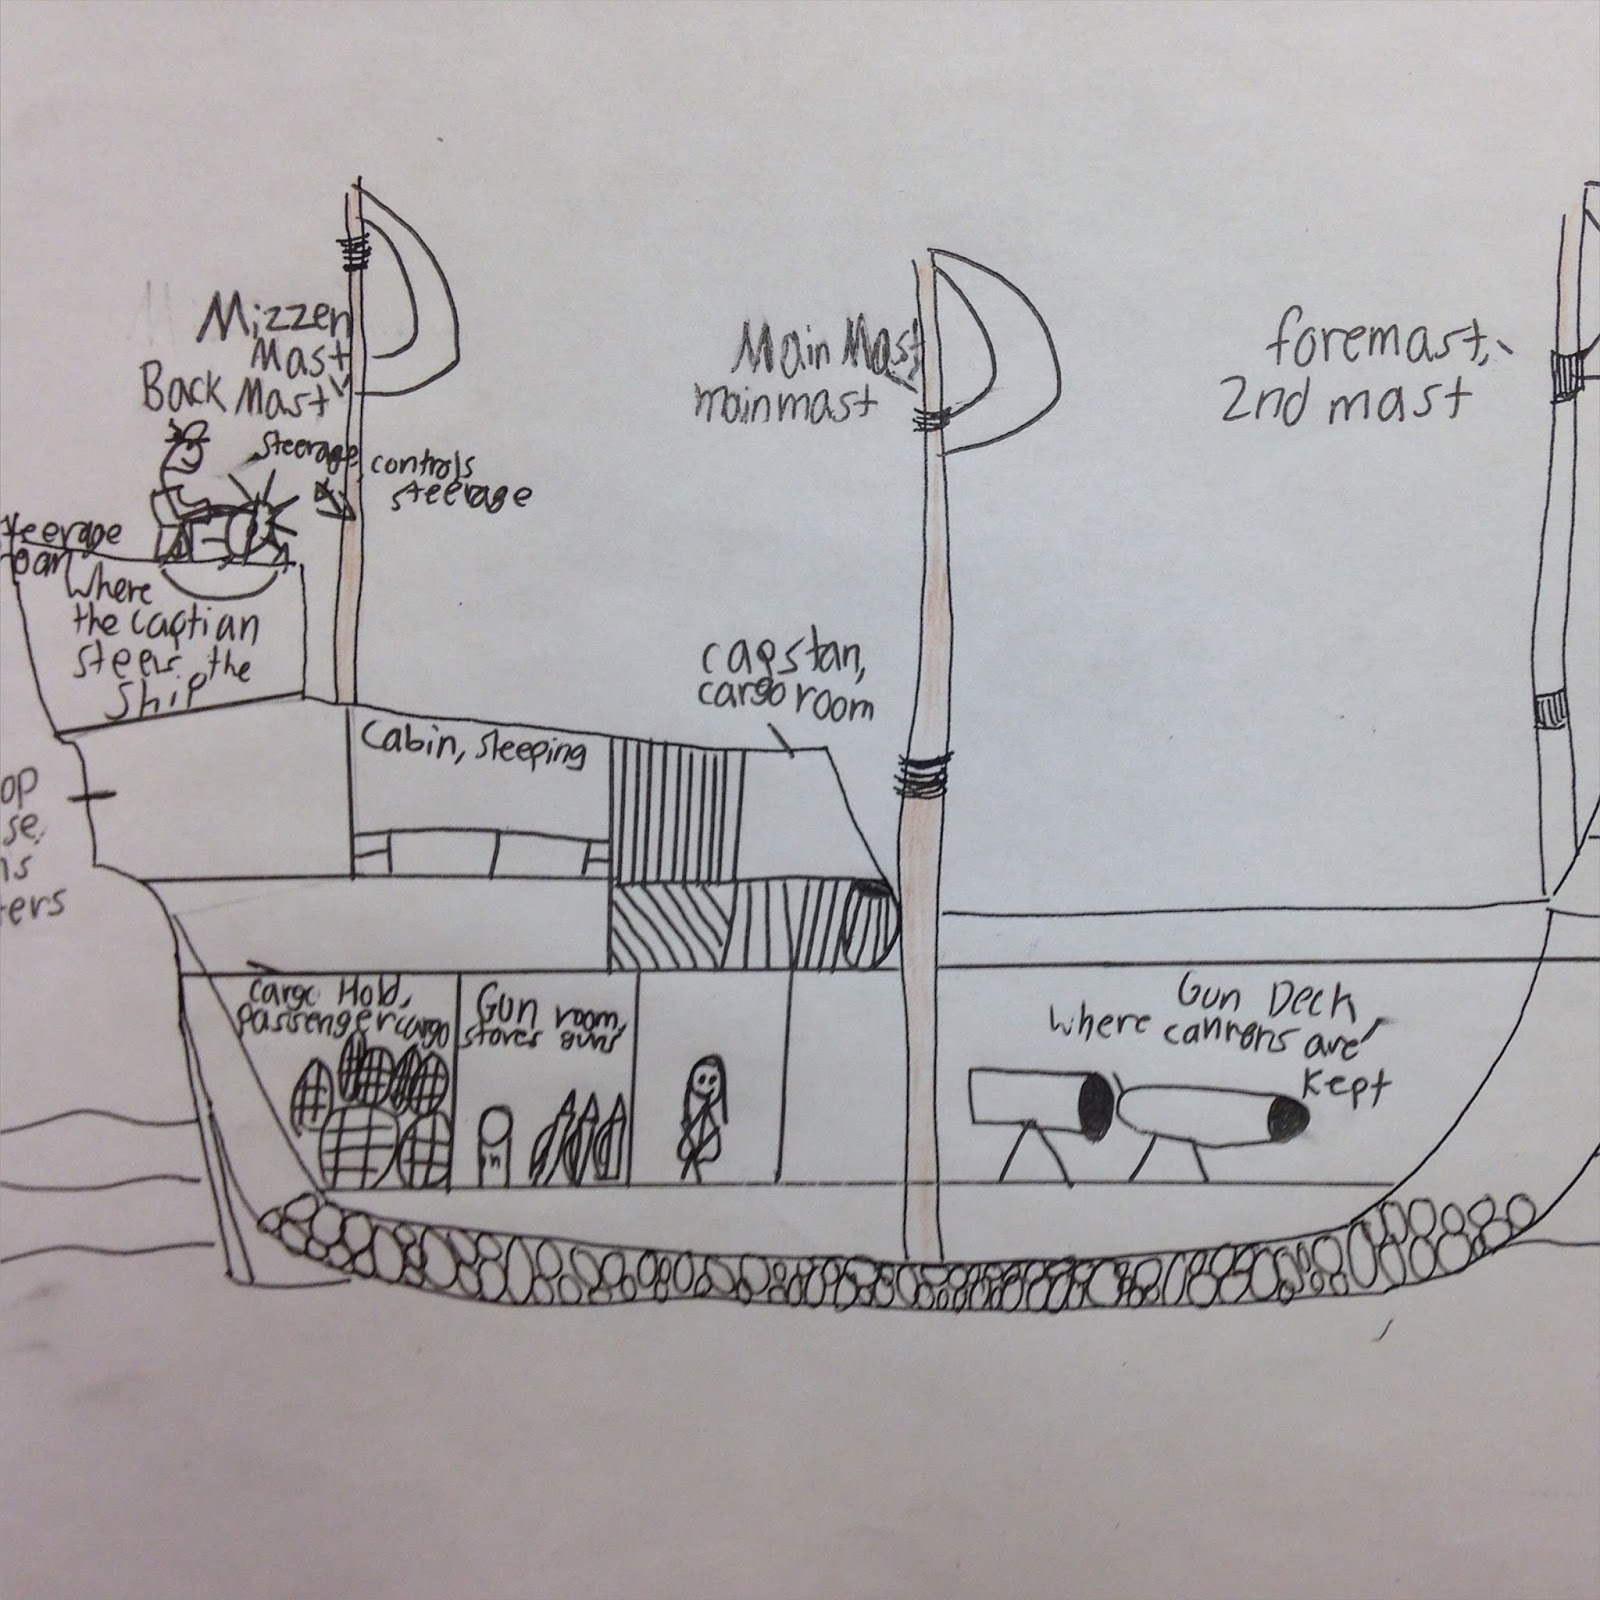 small resolution of  creating cutaway mayflower diagrams with 14 main ship parts labeled we defined the ship parts first and then searched mayflower diagrams and pictures